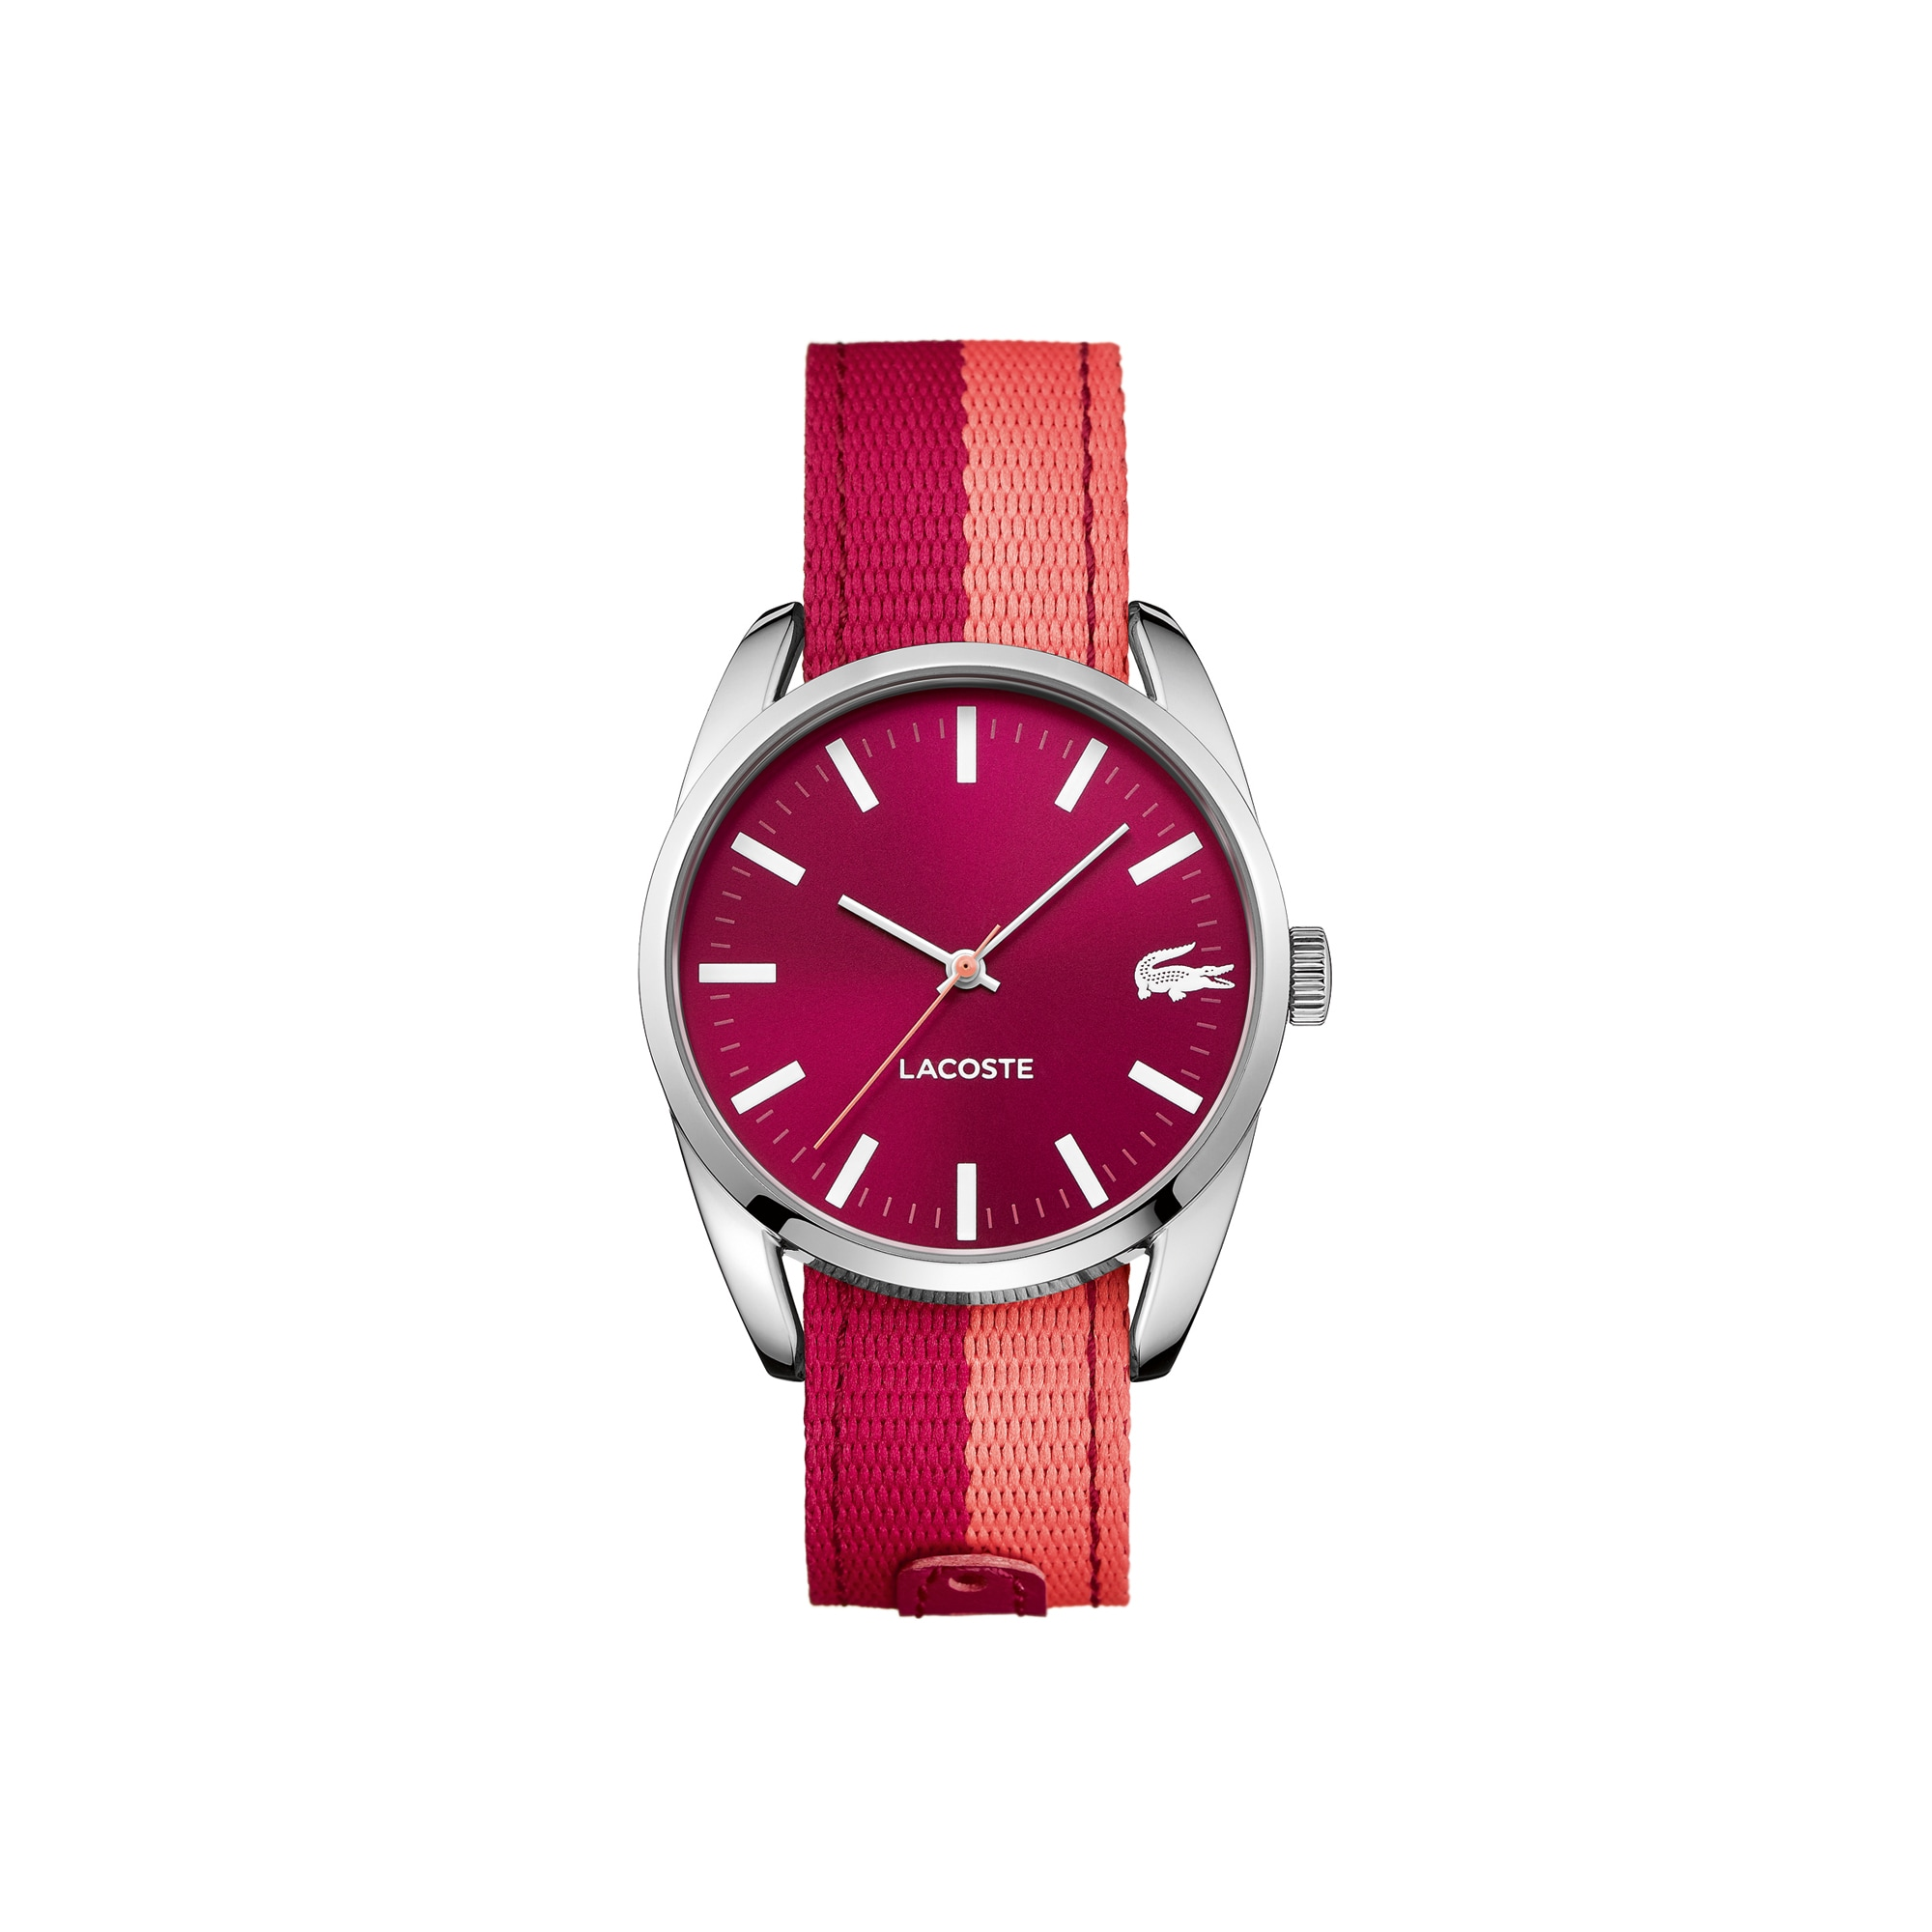 Malaga Watch - pink reversible textile strap